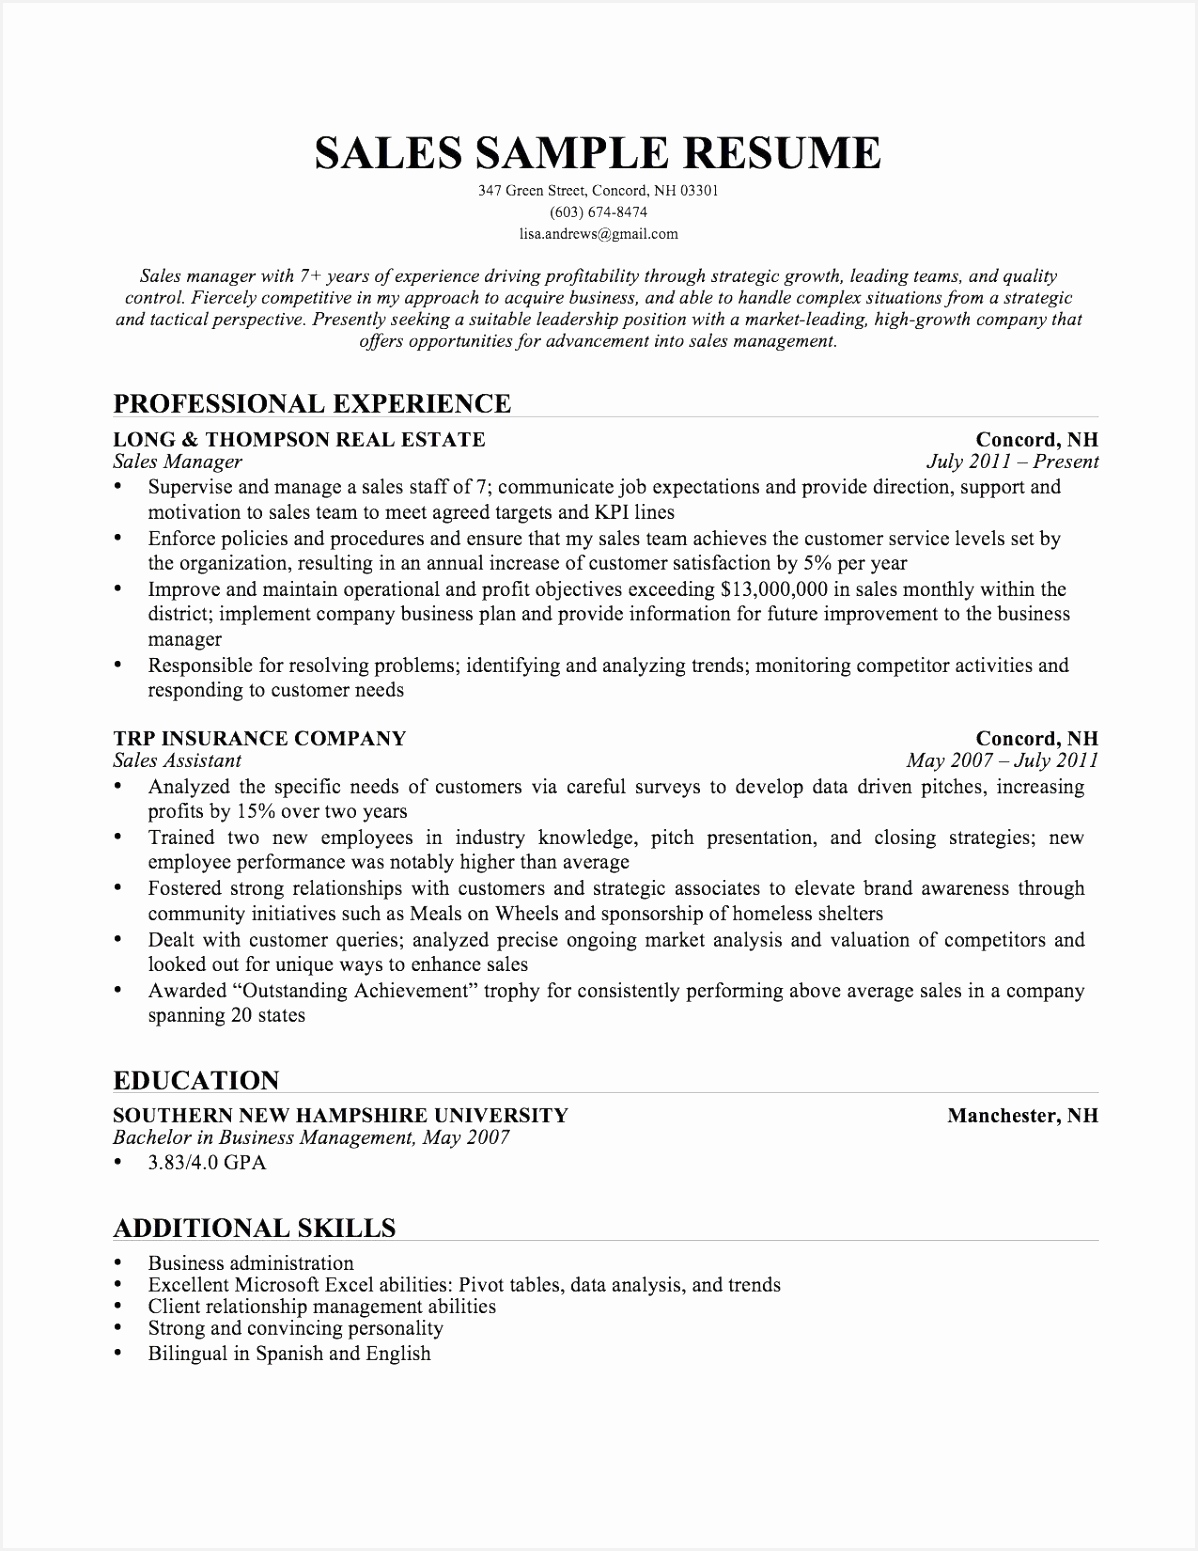 Sample Resume Sales and Marketing Manager Valid American Resume Sample New Student Resume 0d Wallpapers 155111981gYen